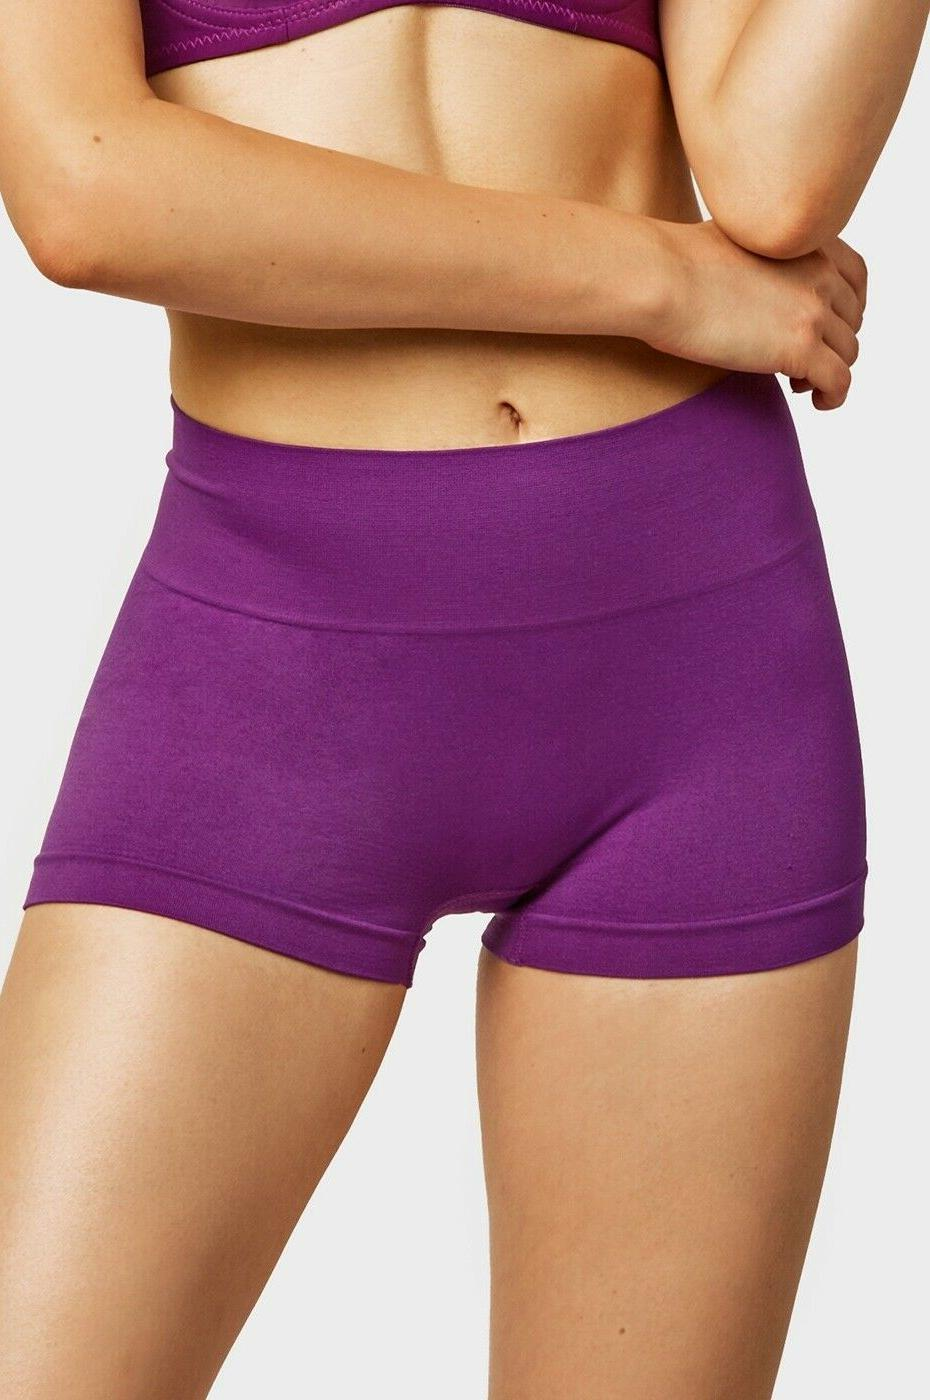 Lot of Seamless Hipster Panties One Size Underwear